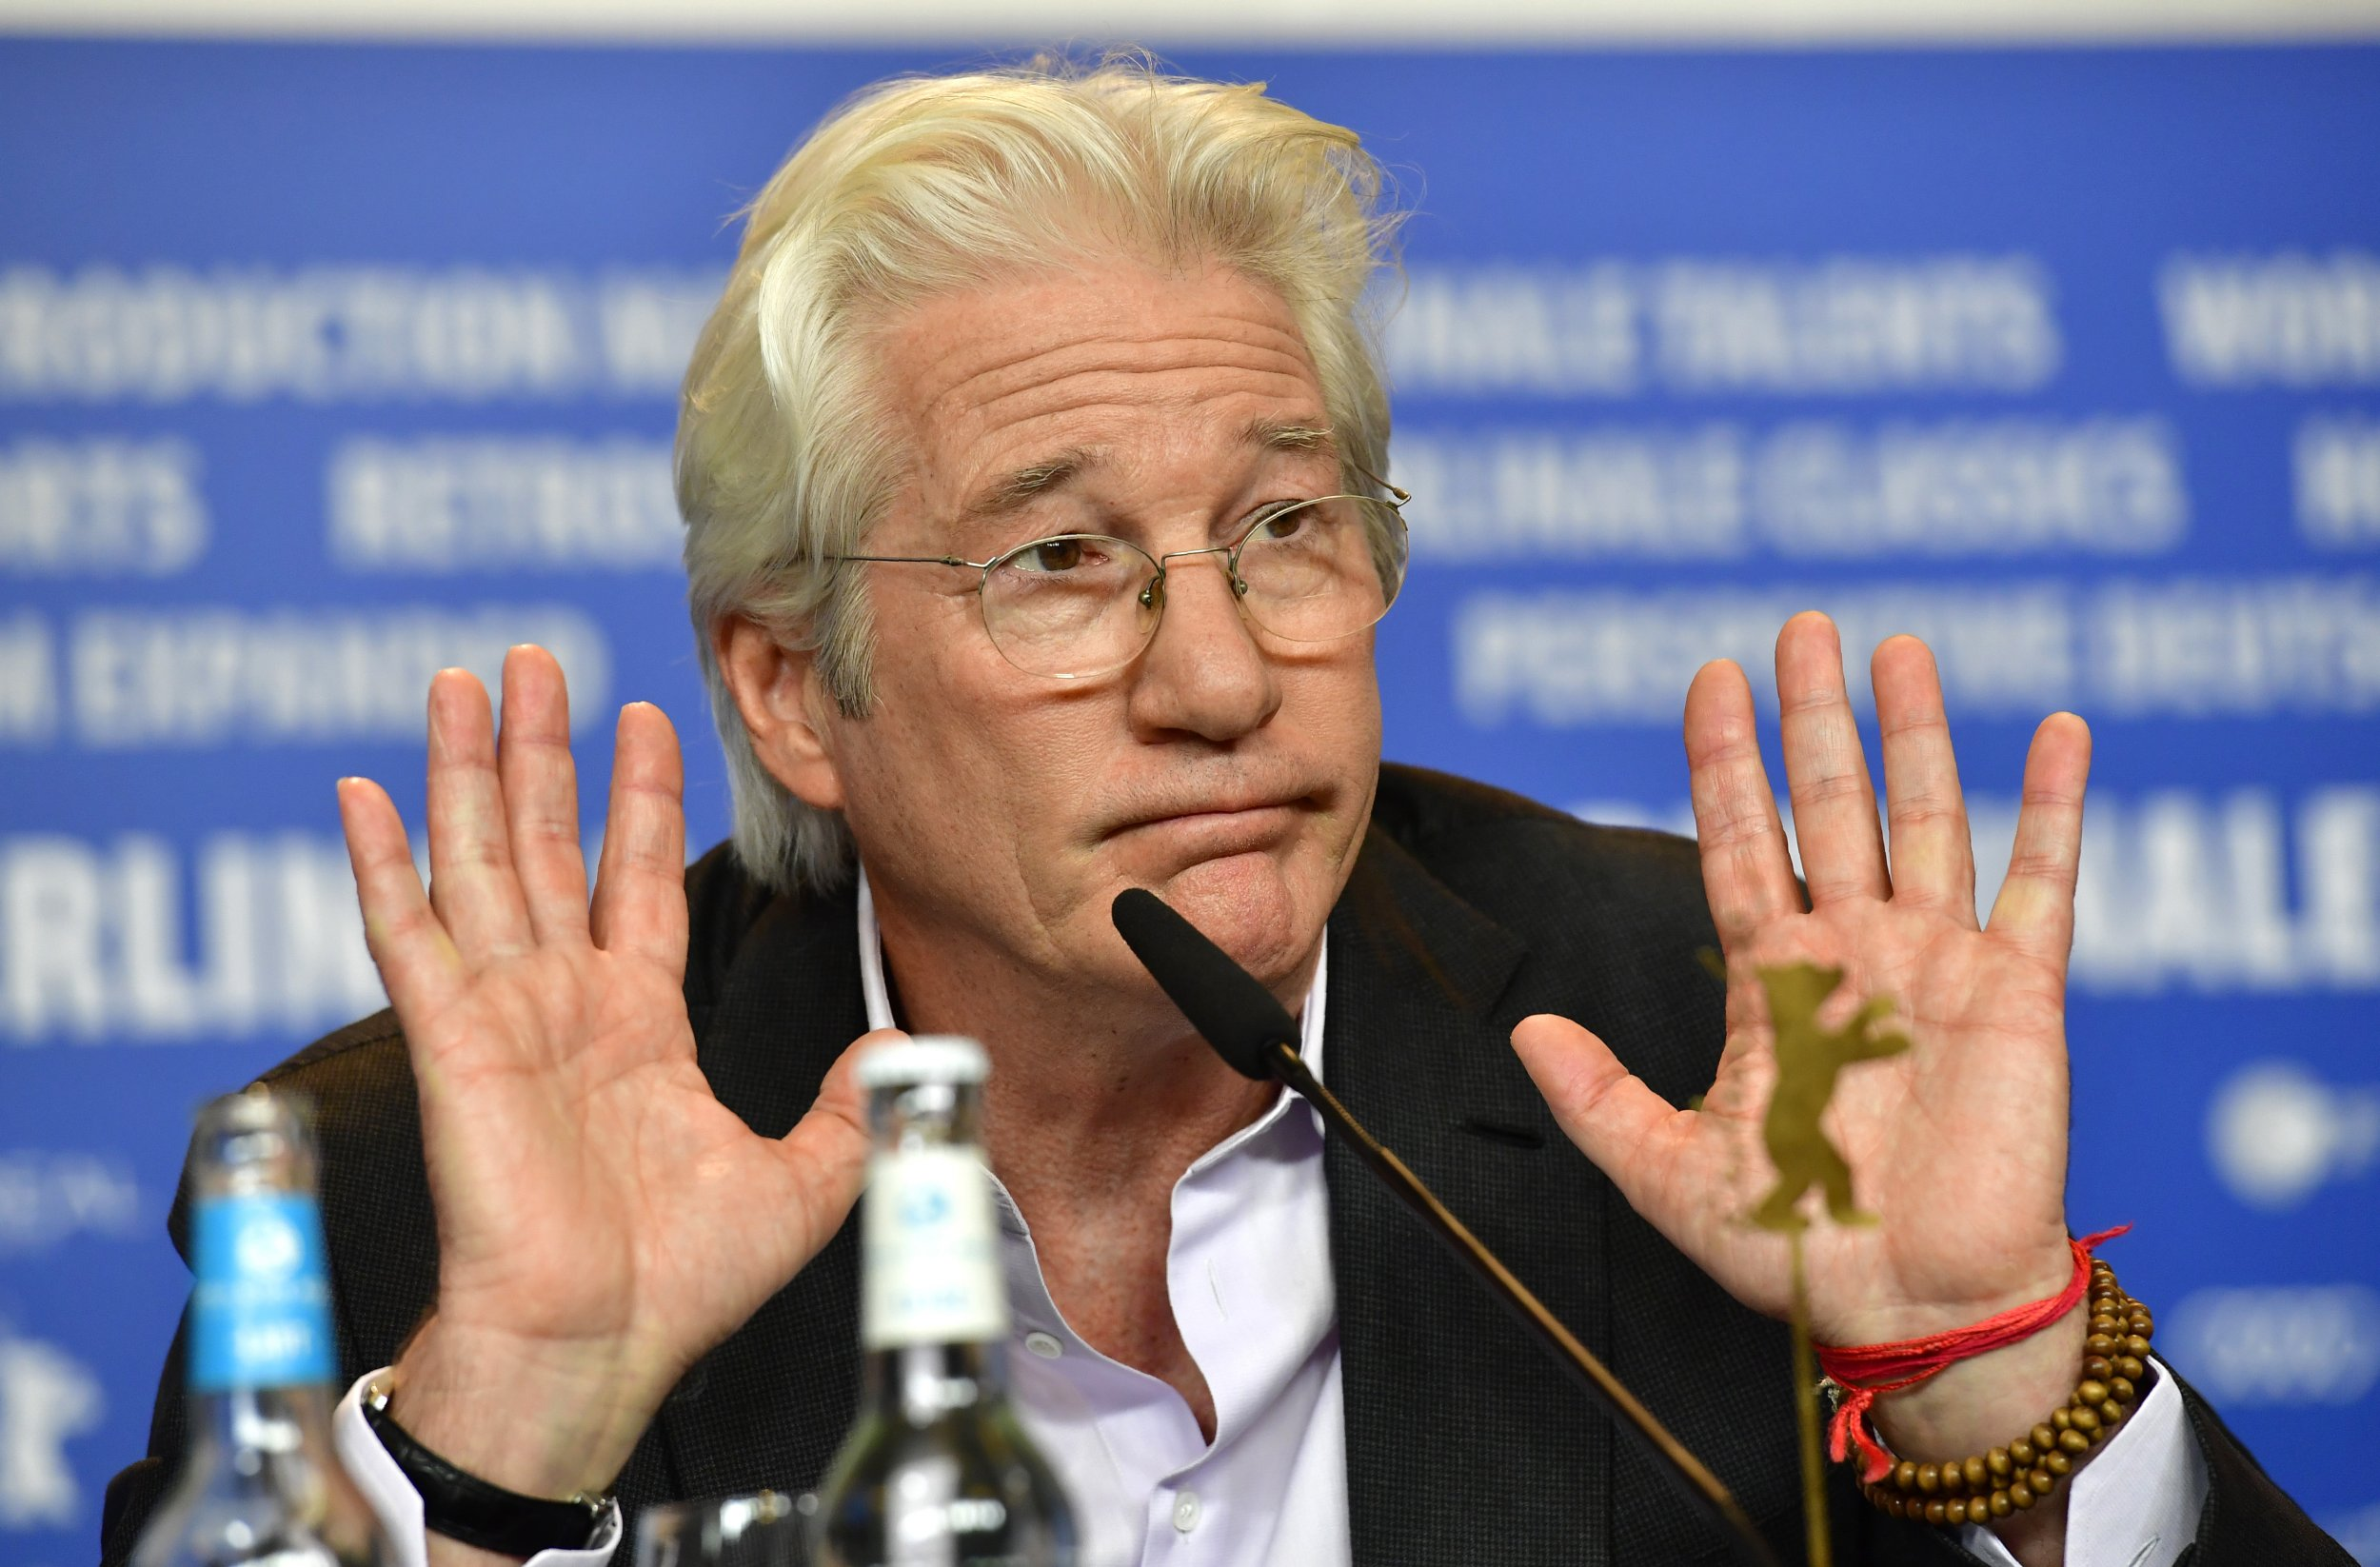 Richard Gere There Is No Defense of Israels Occupation